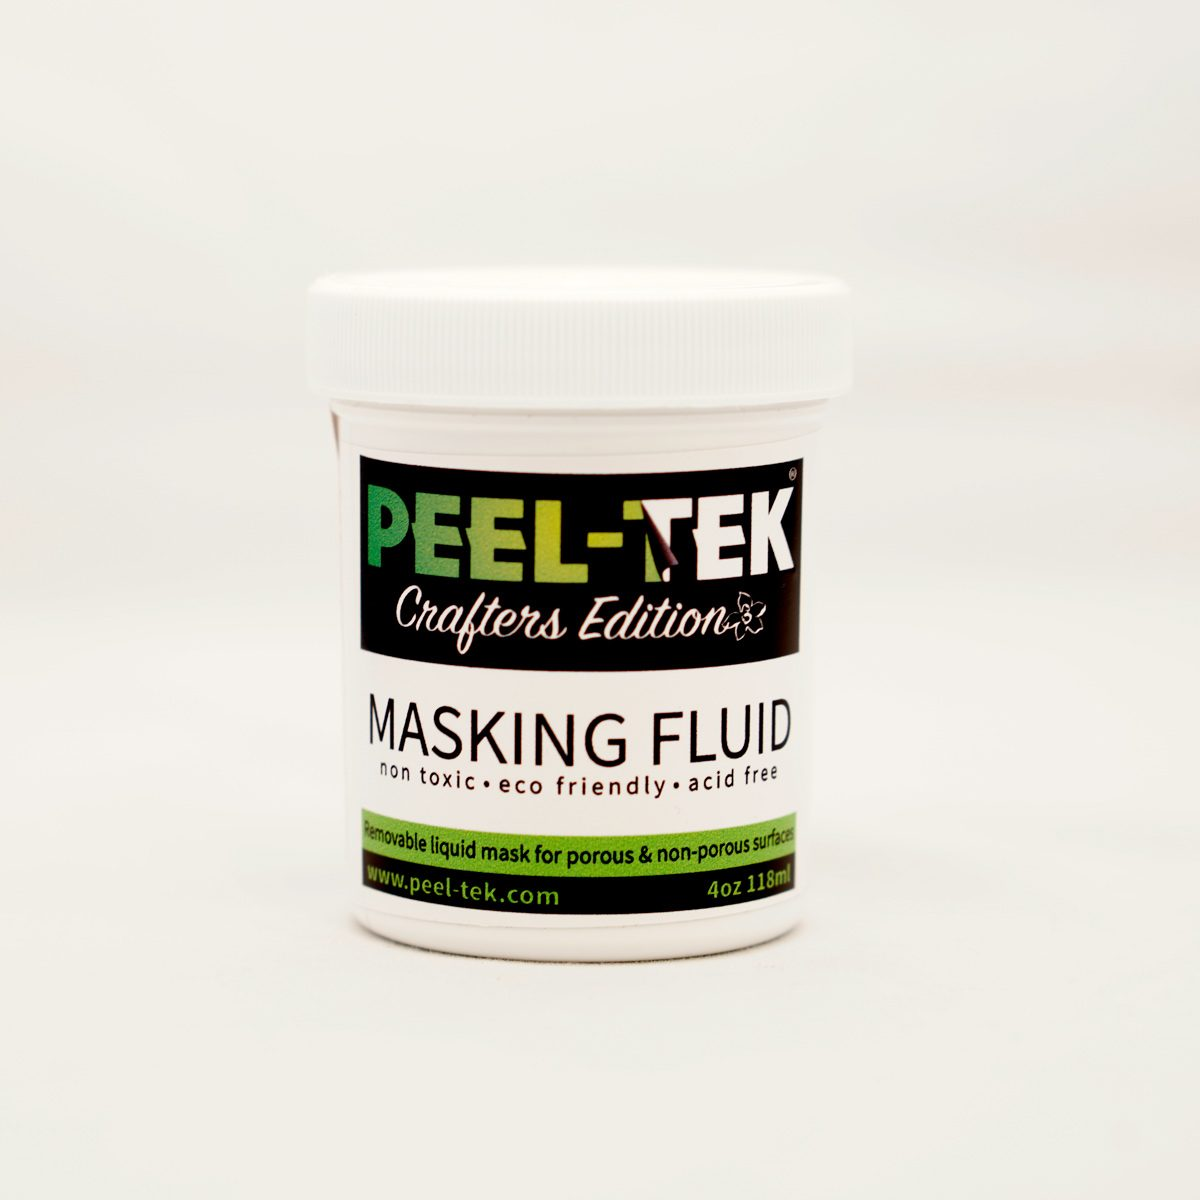 Peel-Tek Review: What to Know